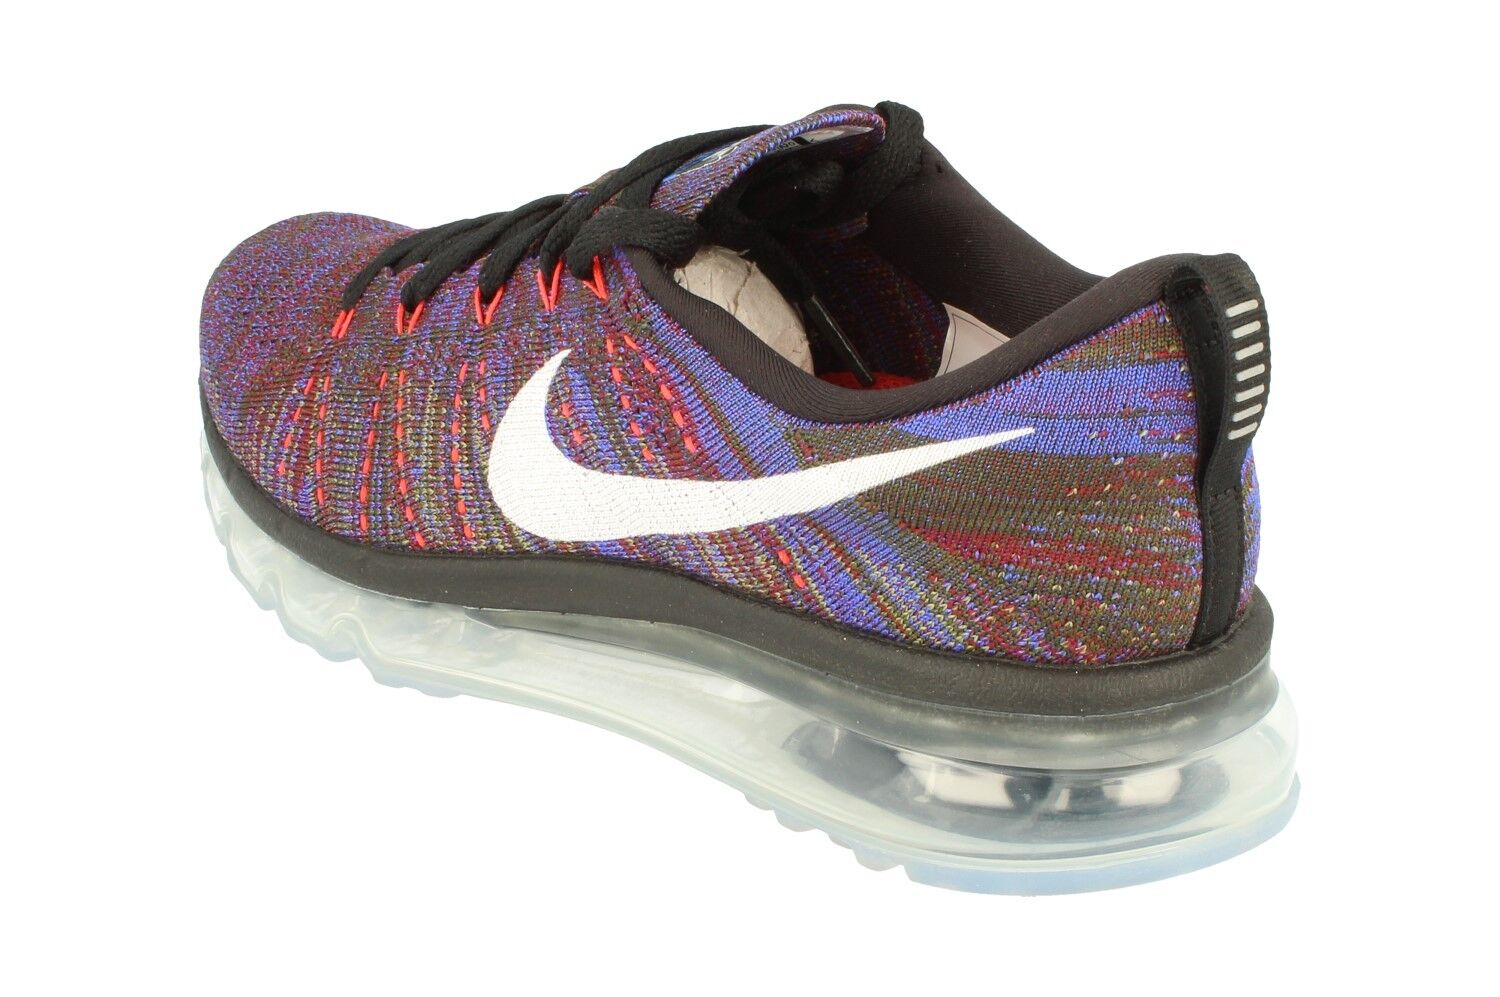 Nike Flyknit Air Max  Uomo Running Trainers 620469 Sneakers Sneakers Sneakers Schuhes 016 05b469